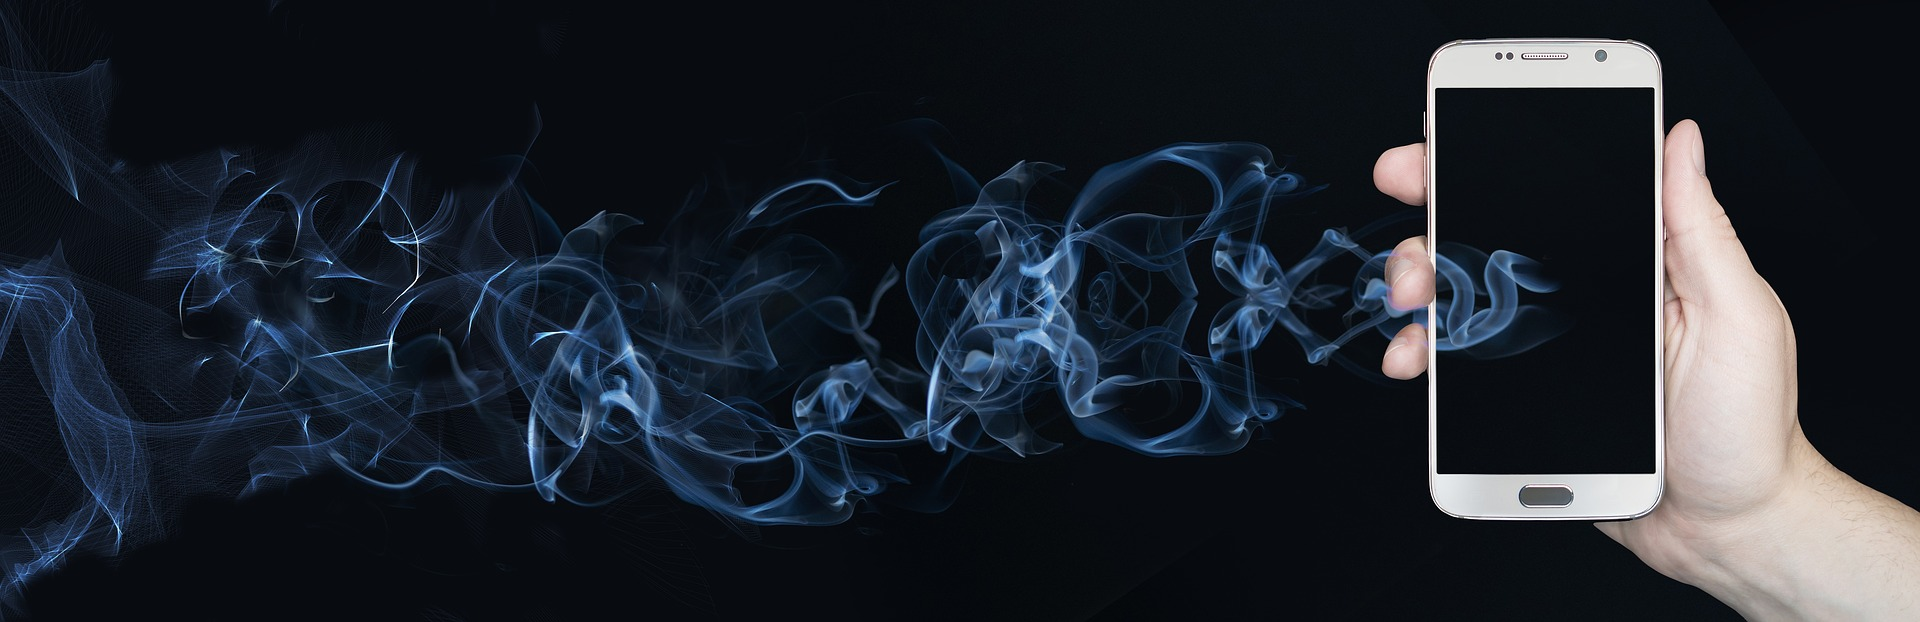 Smartphone in human hand, face forward to viewer. Trails of smoke come out of its black (turned off) screen.